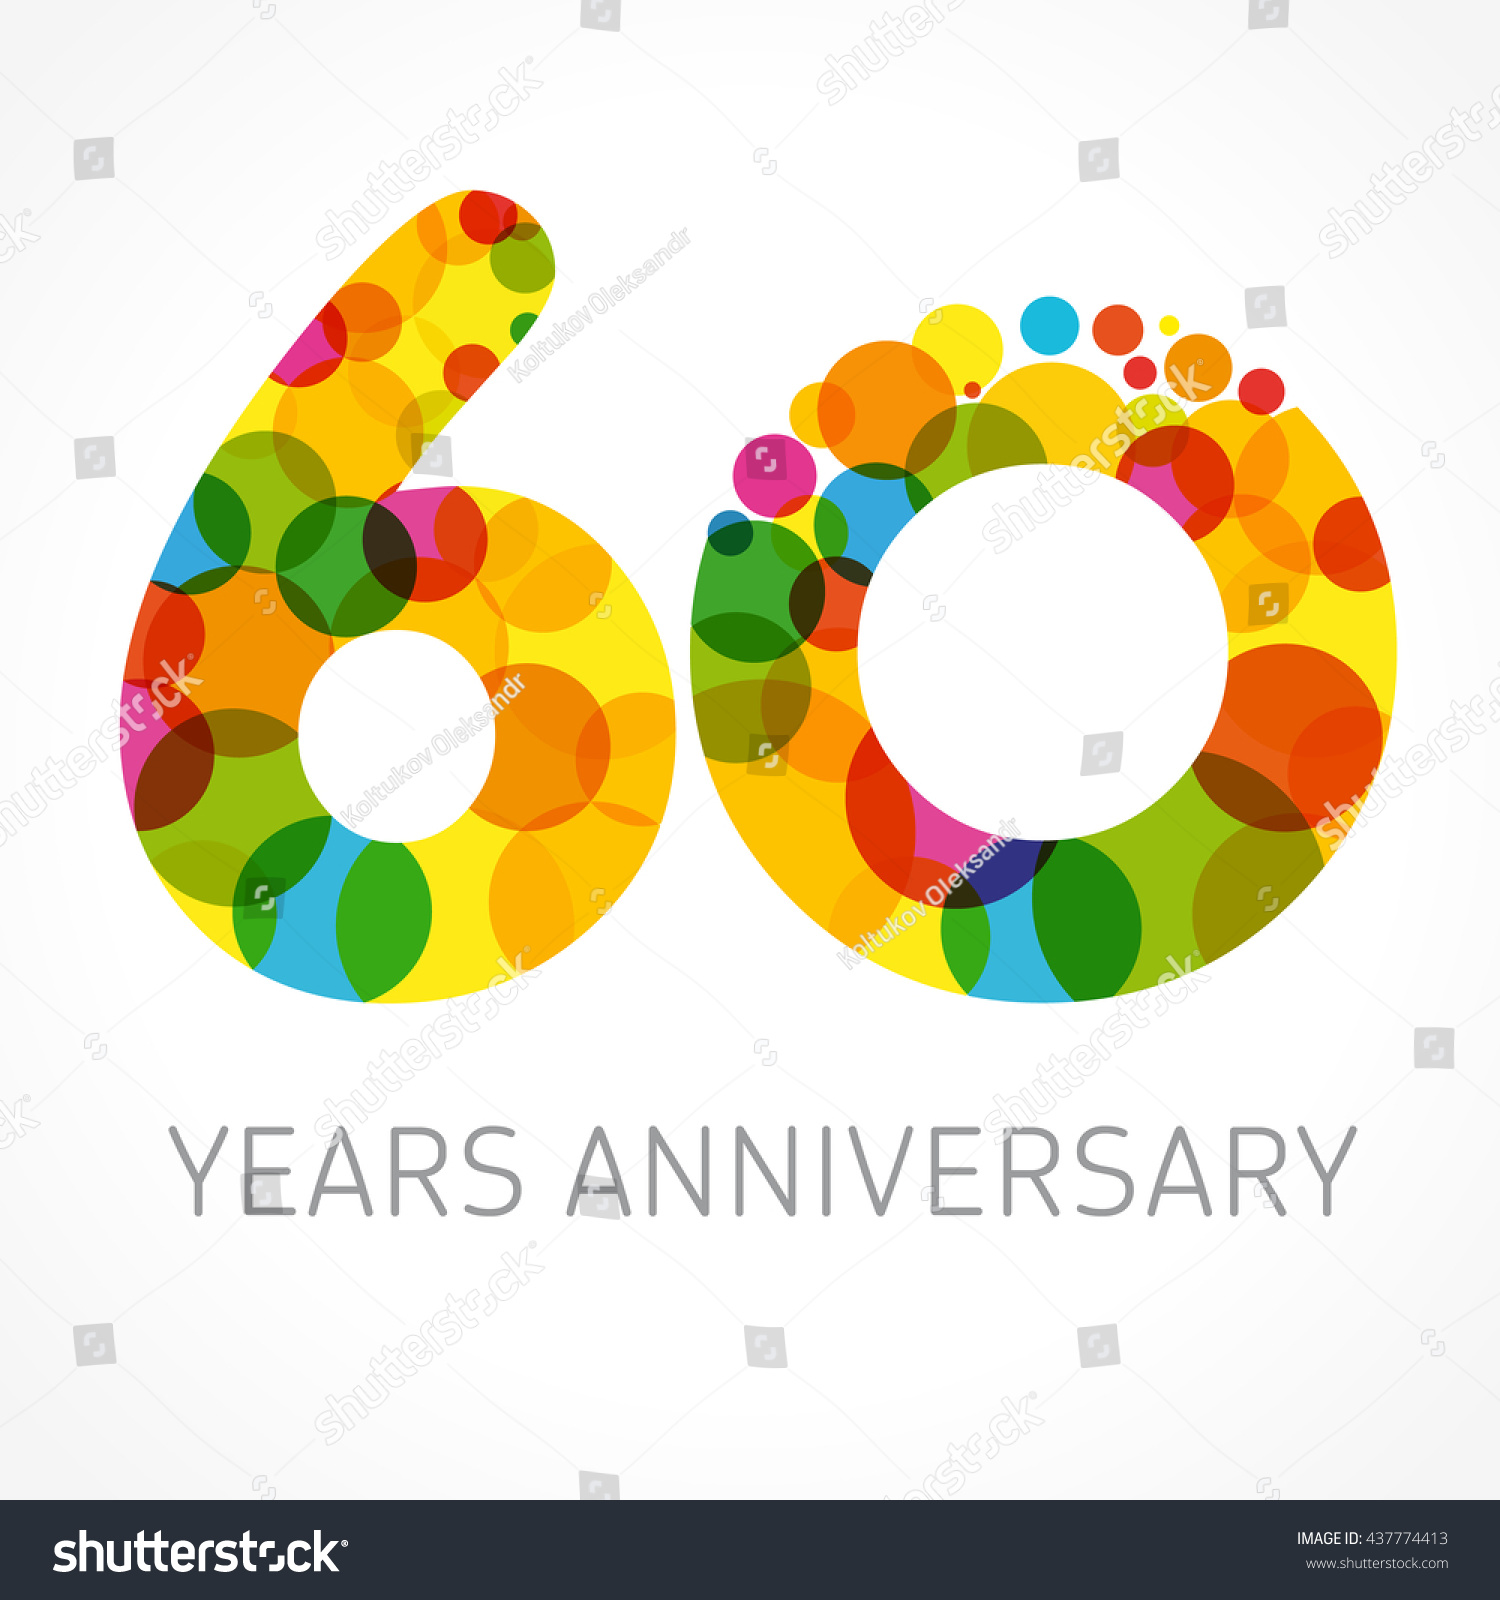 Template logo 60th anniversary circle form stock vector 437774413 shutterstock - Color of th anniversary ...